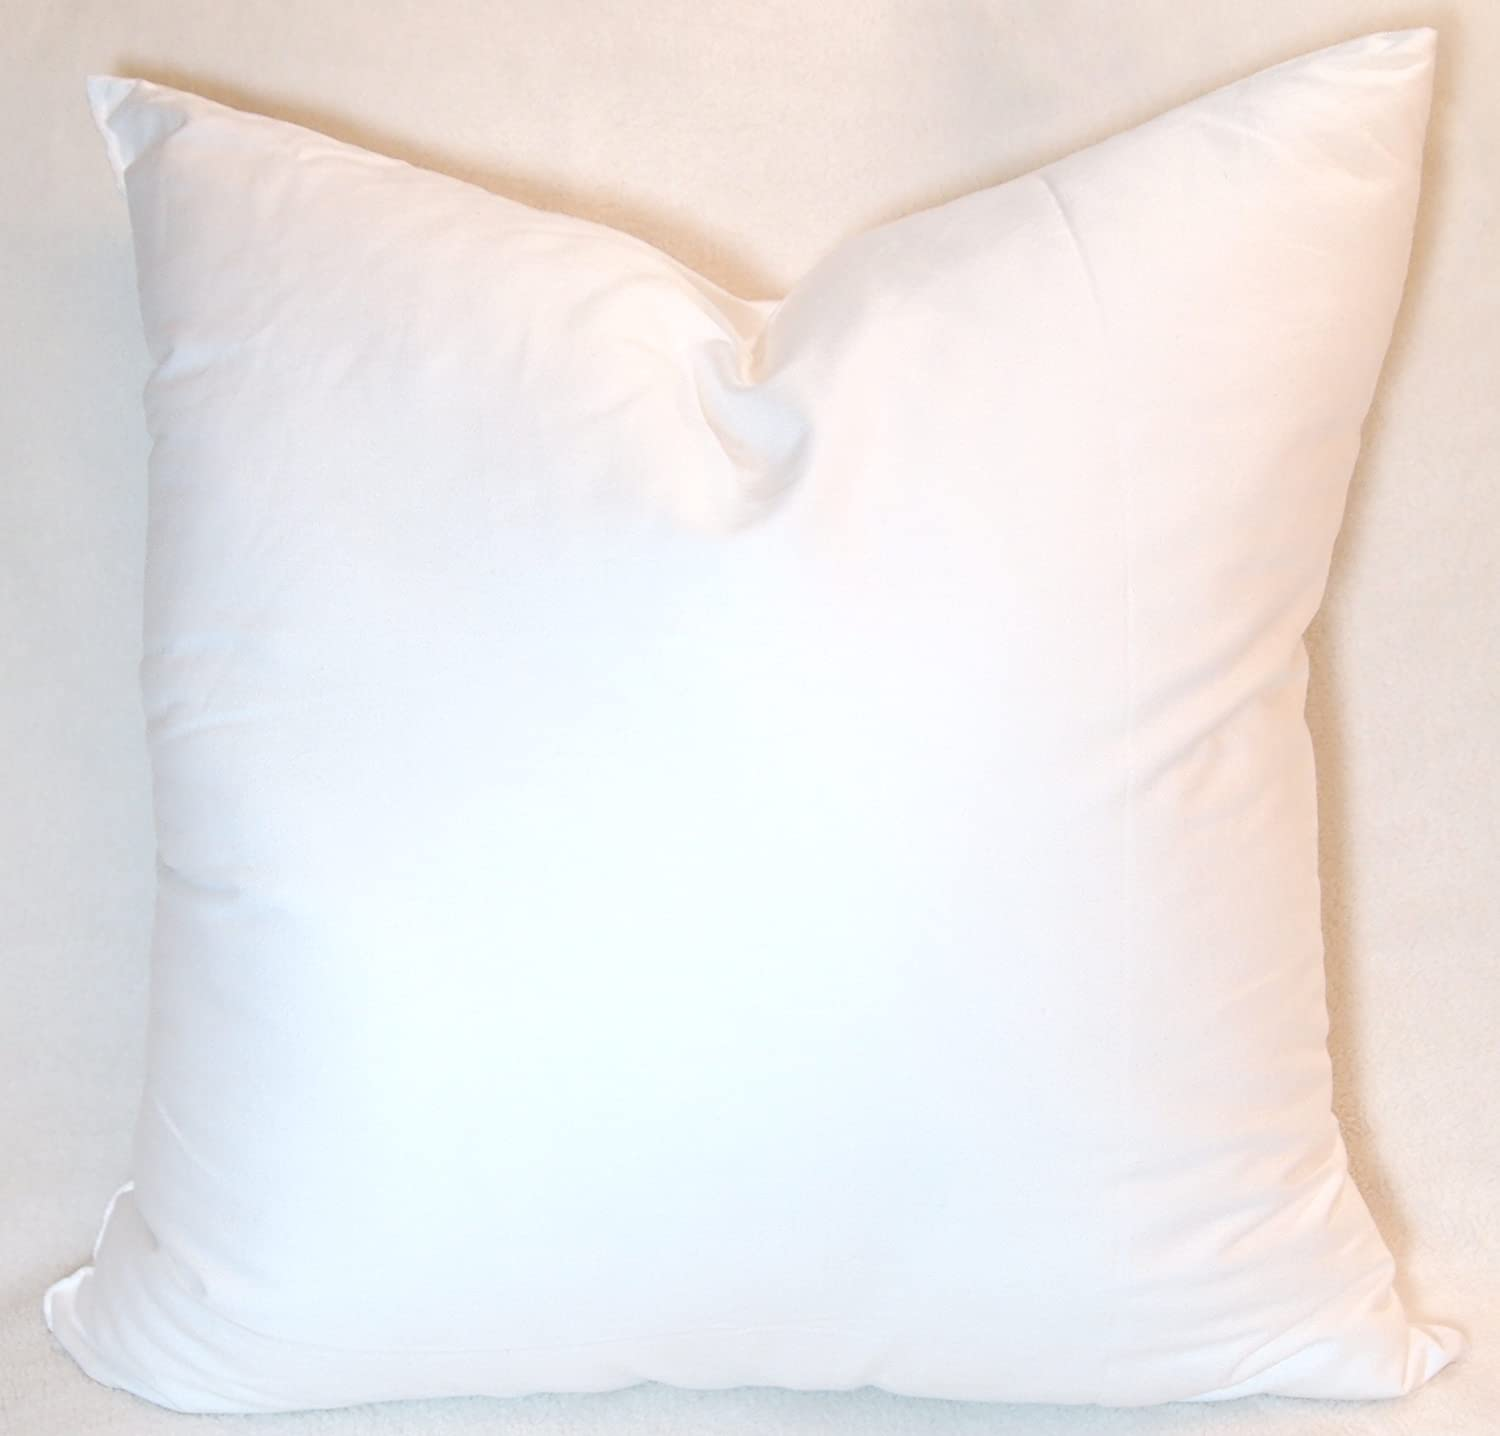 amazoncom pillowflex synthetic down pillow form insert 22 by 22inch home u0026 kitchen